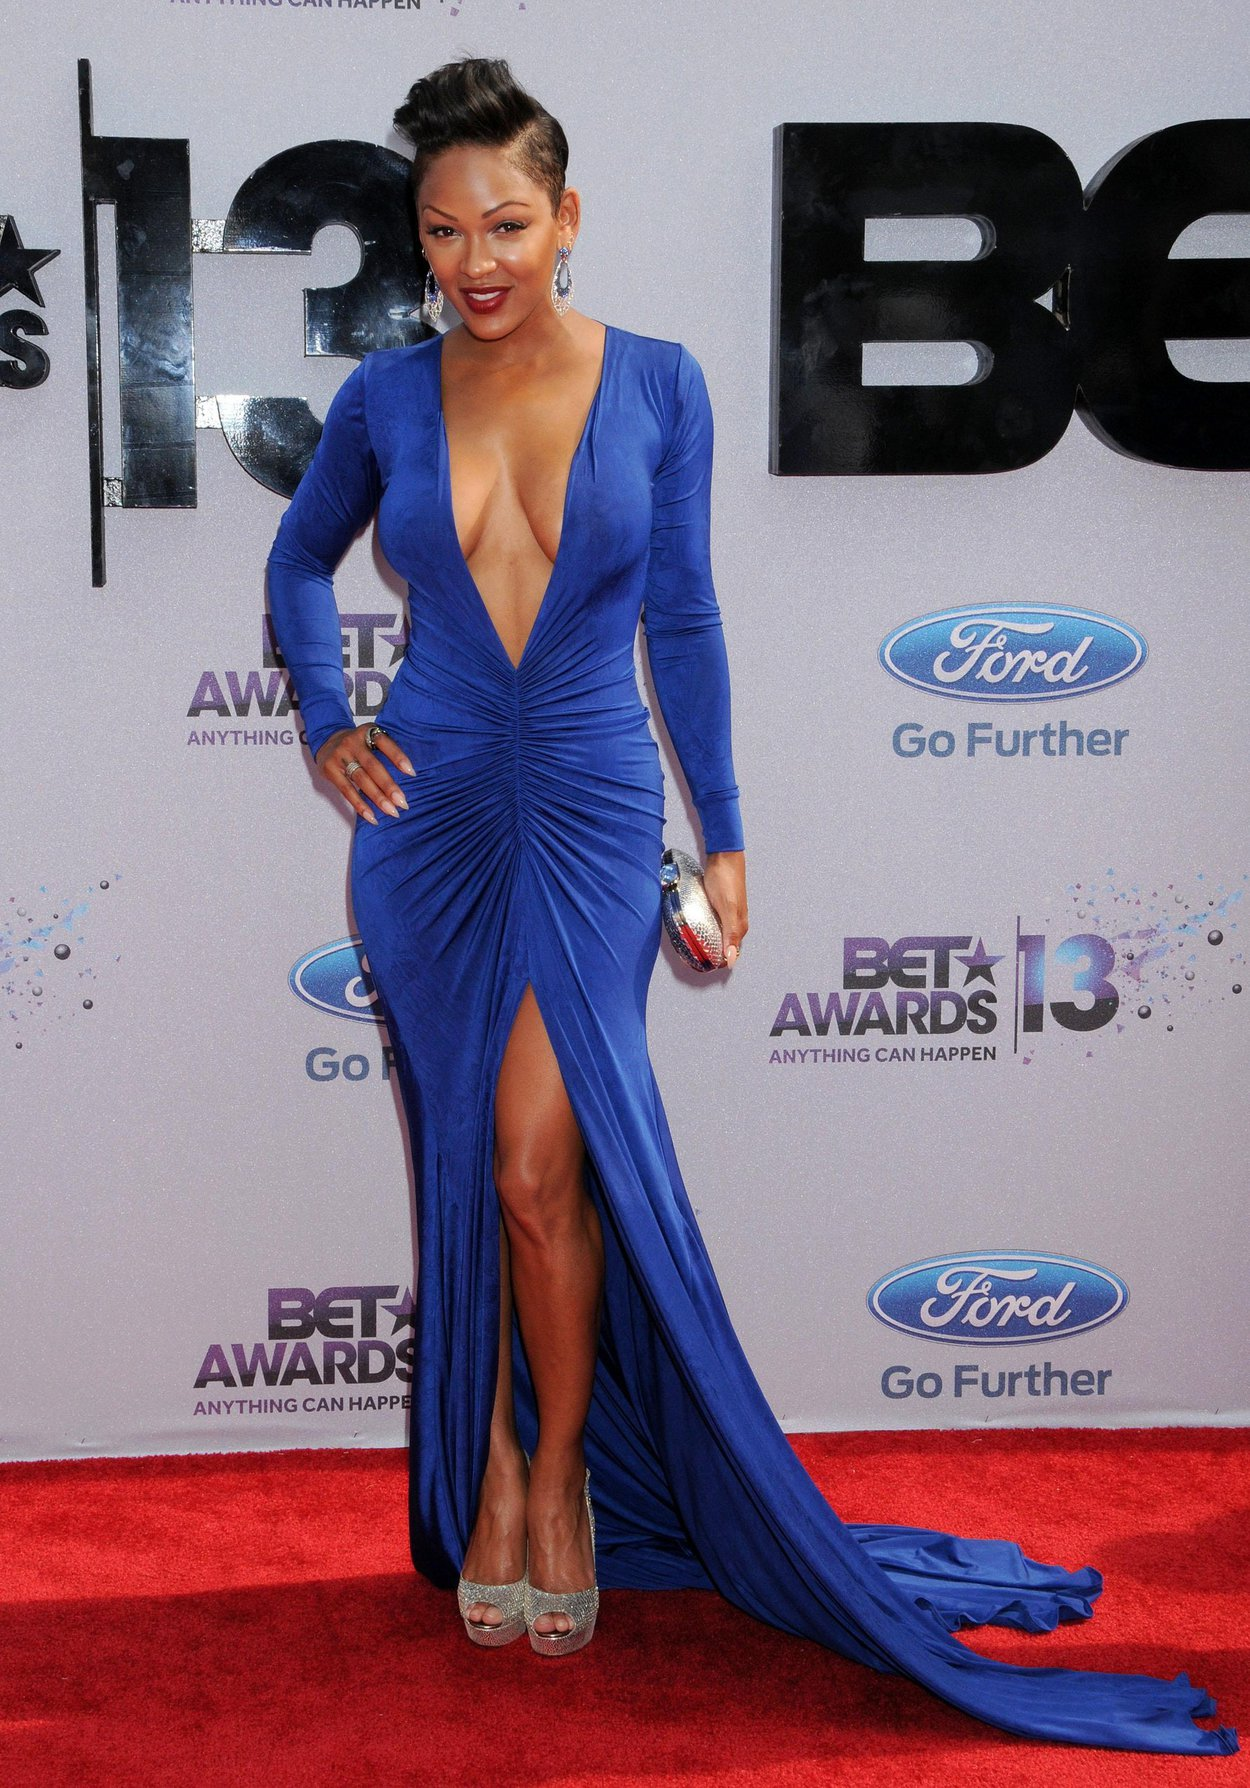 Meagan Good - 13th BET Awards in LA 6/30/13